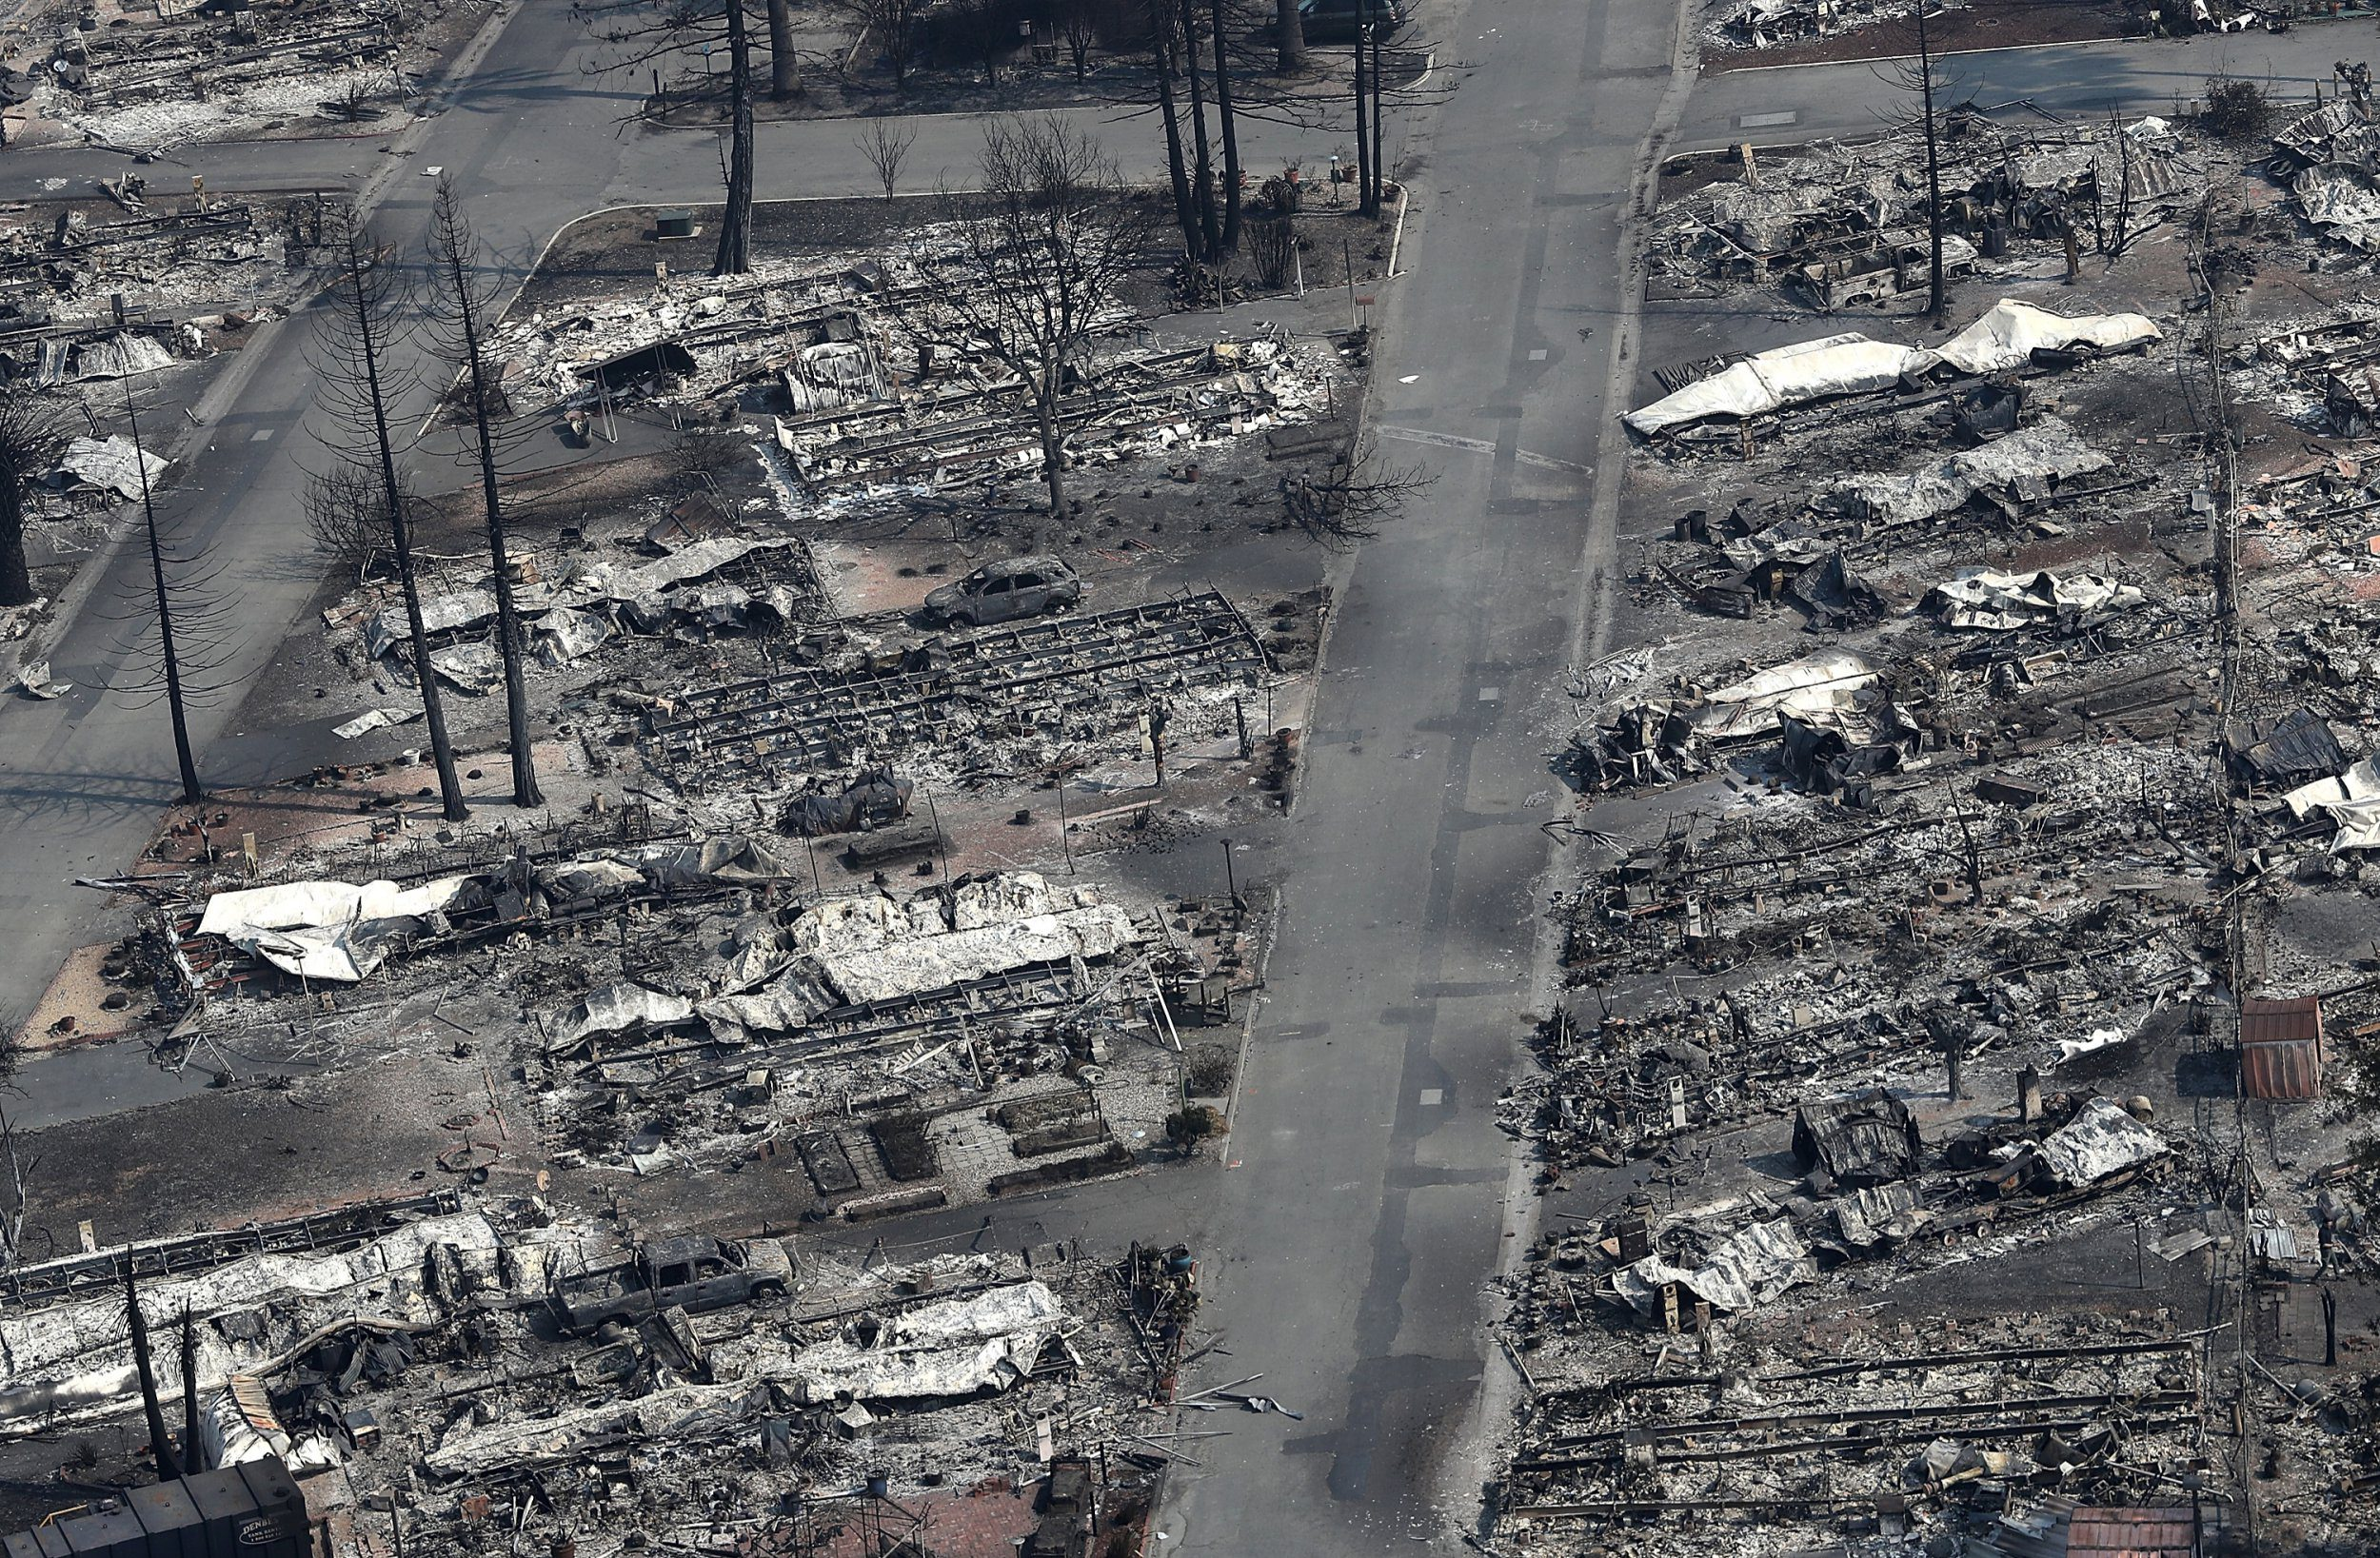 Devastating wildfires make California landscape look like black and white photograph